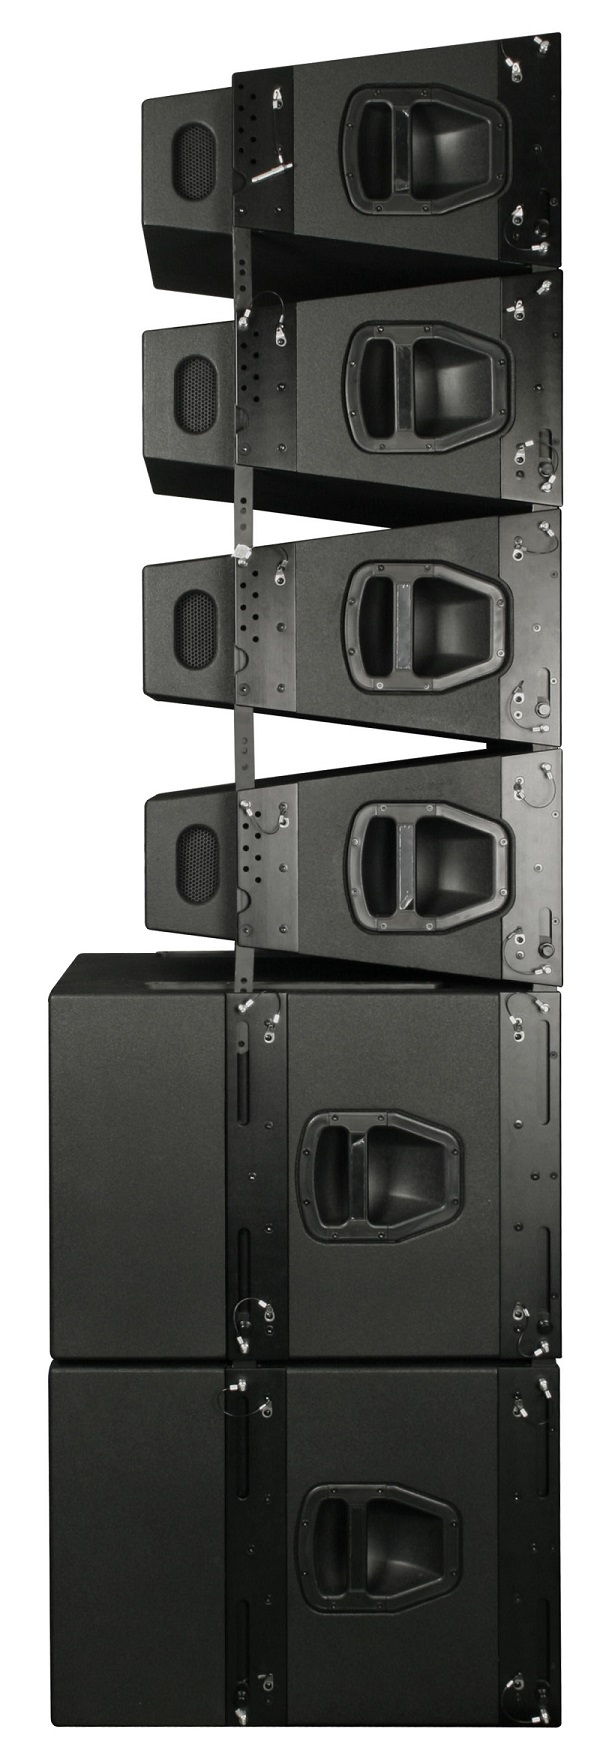 Pa Speakers Design+mini Line Array+dual 10inch 700w Rms+neodymium ...